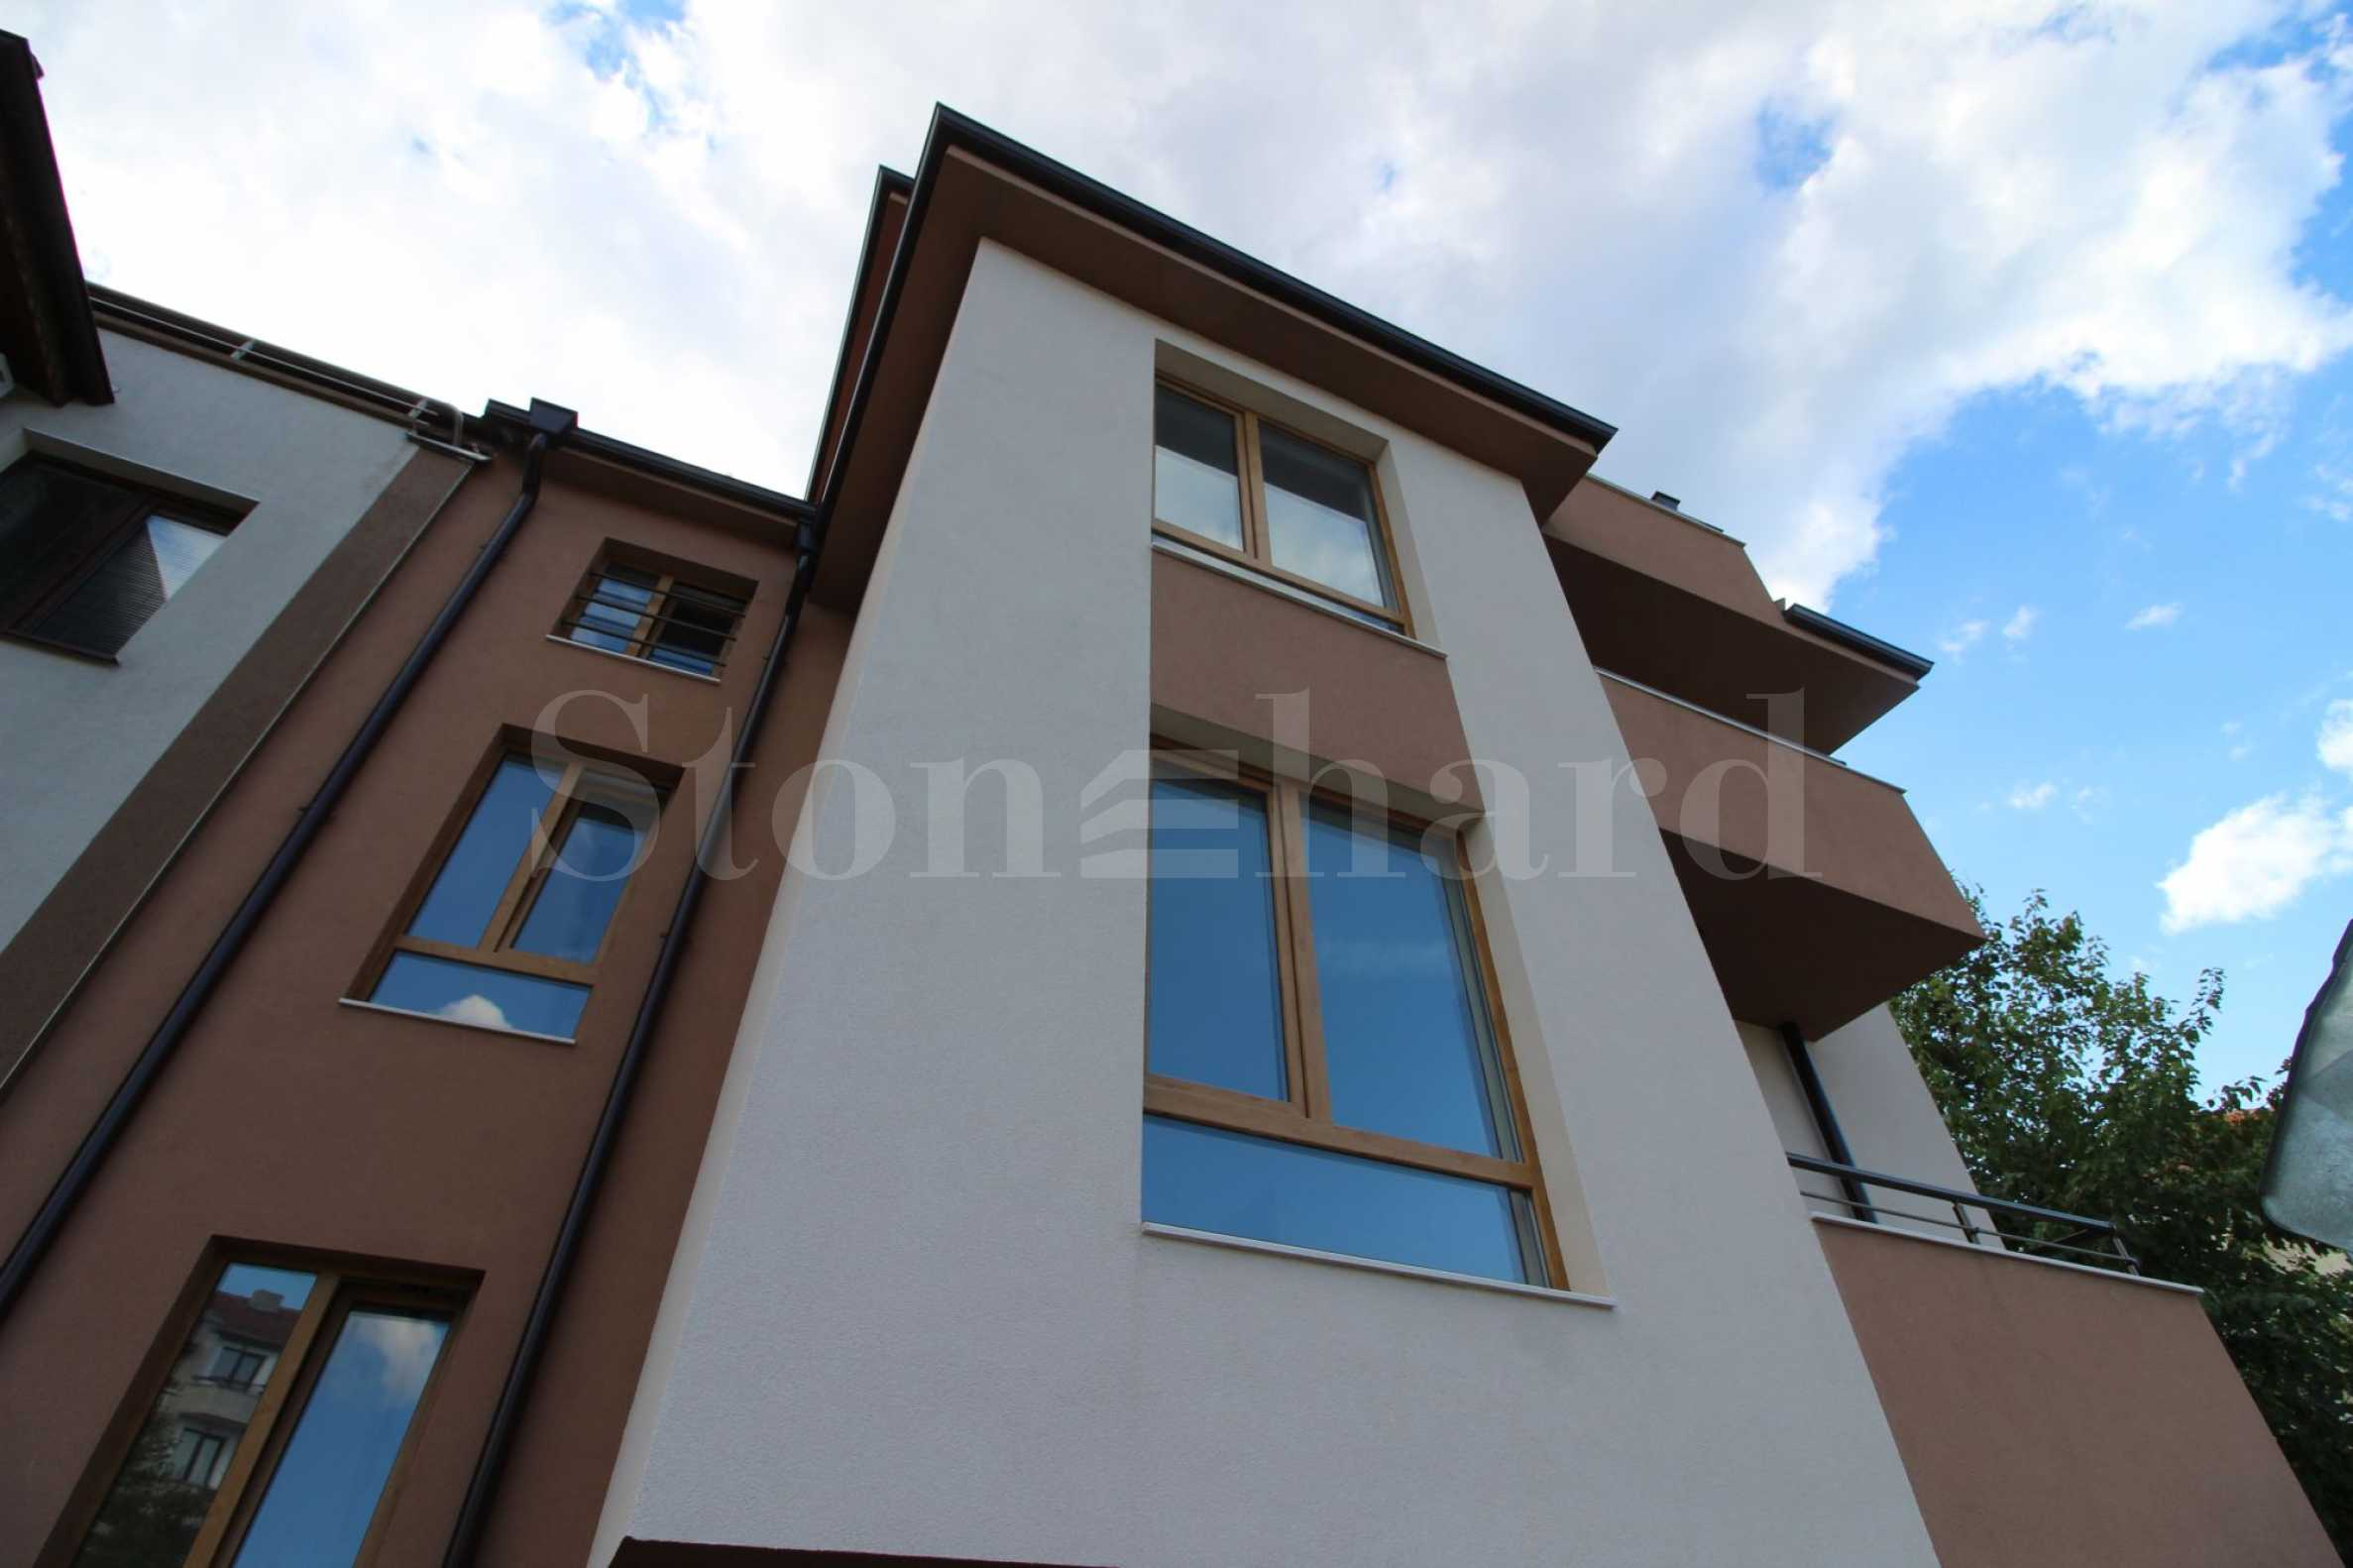 1-Bedroom apartments in a newly built building in Vasiliko district2 - Stonehard